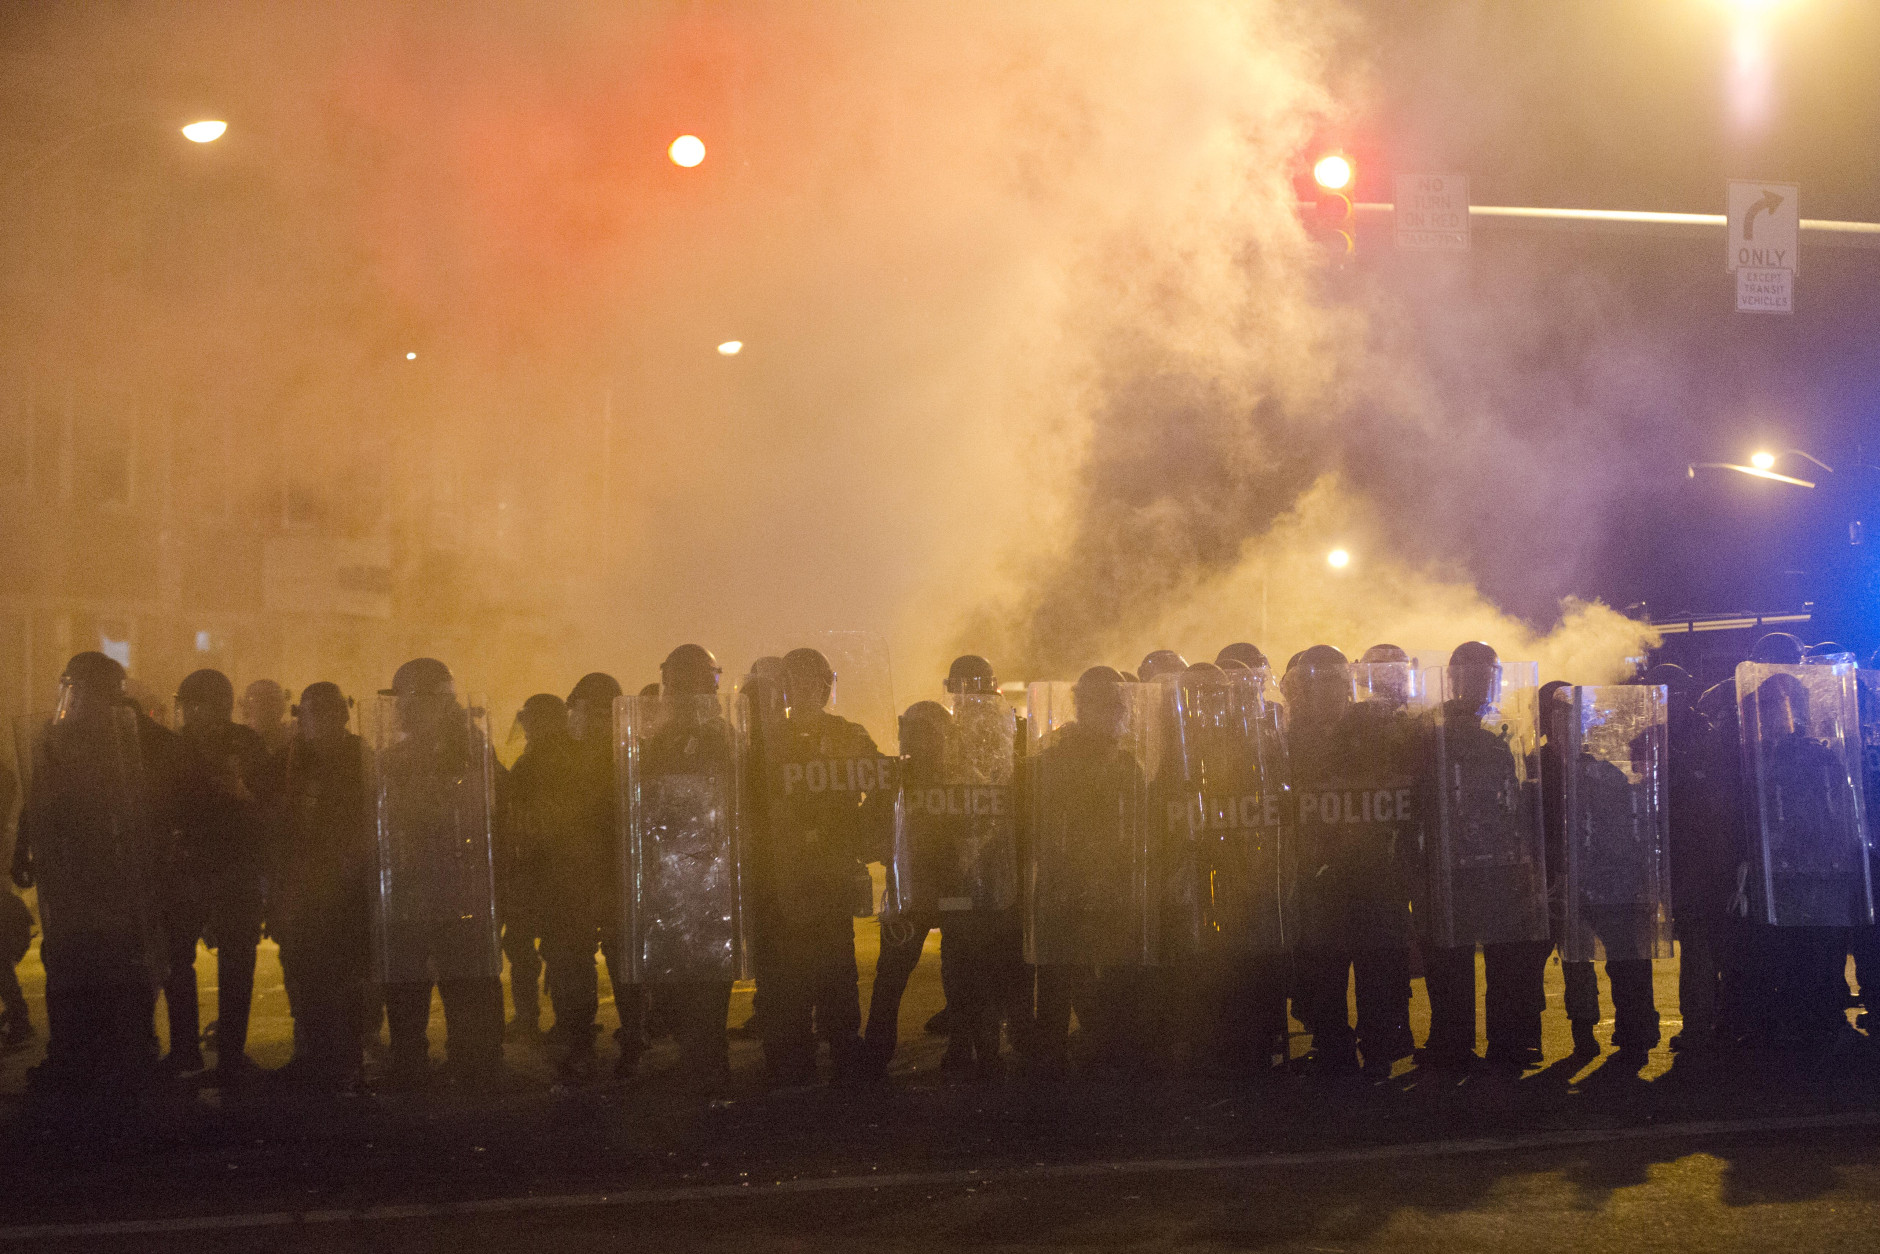 Police enforce a 10 p.m. curfew that went into effect in the wake of Monday's riots following the funeral for Freddie Gray, Tuesday, April 28, 2015, in Baltimore. (AP Photo/Matt Rourke)